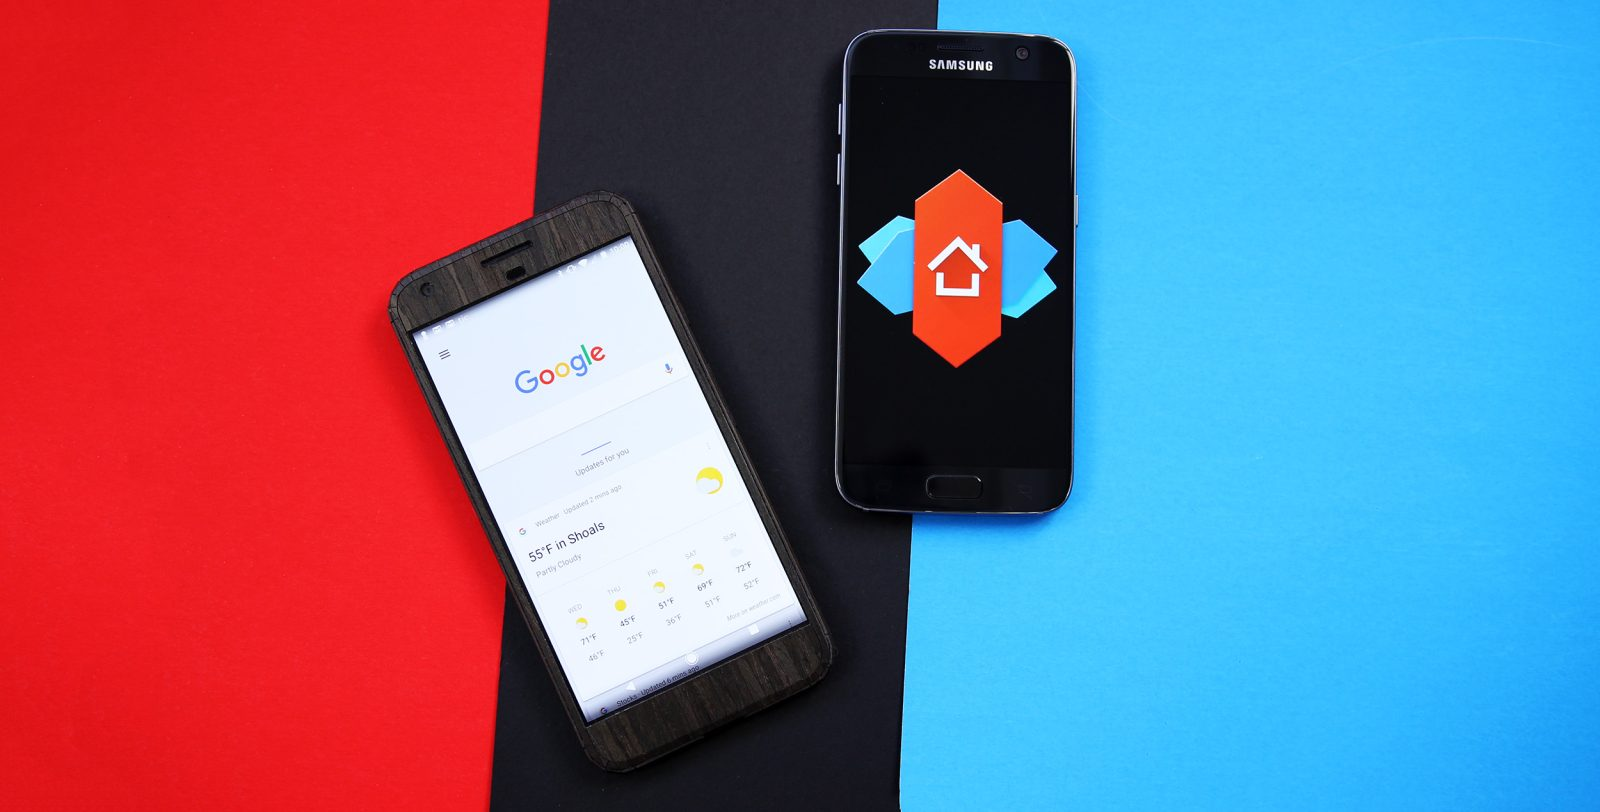 Nova Launcher now has true Google Now integration, here's